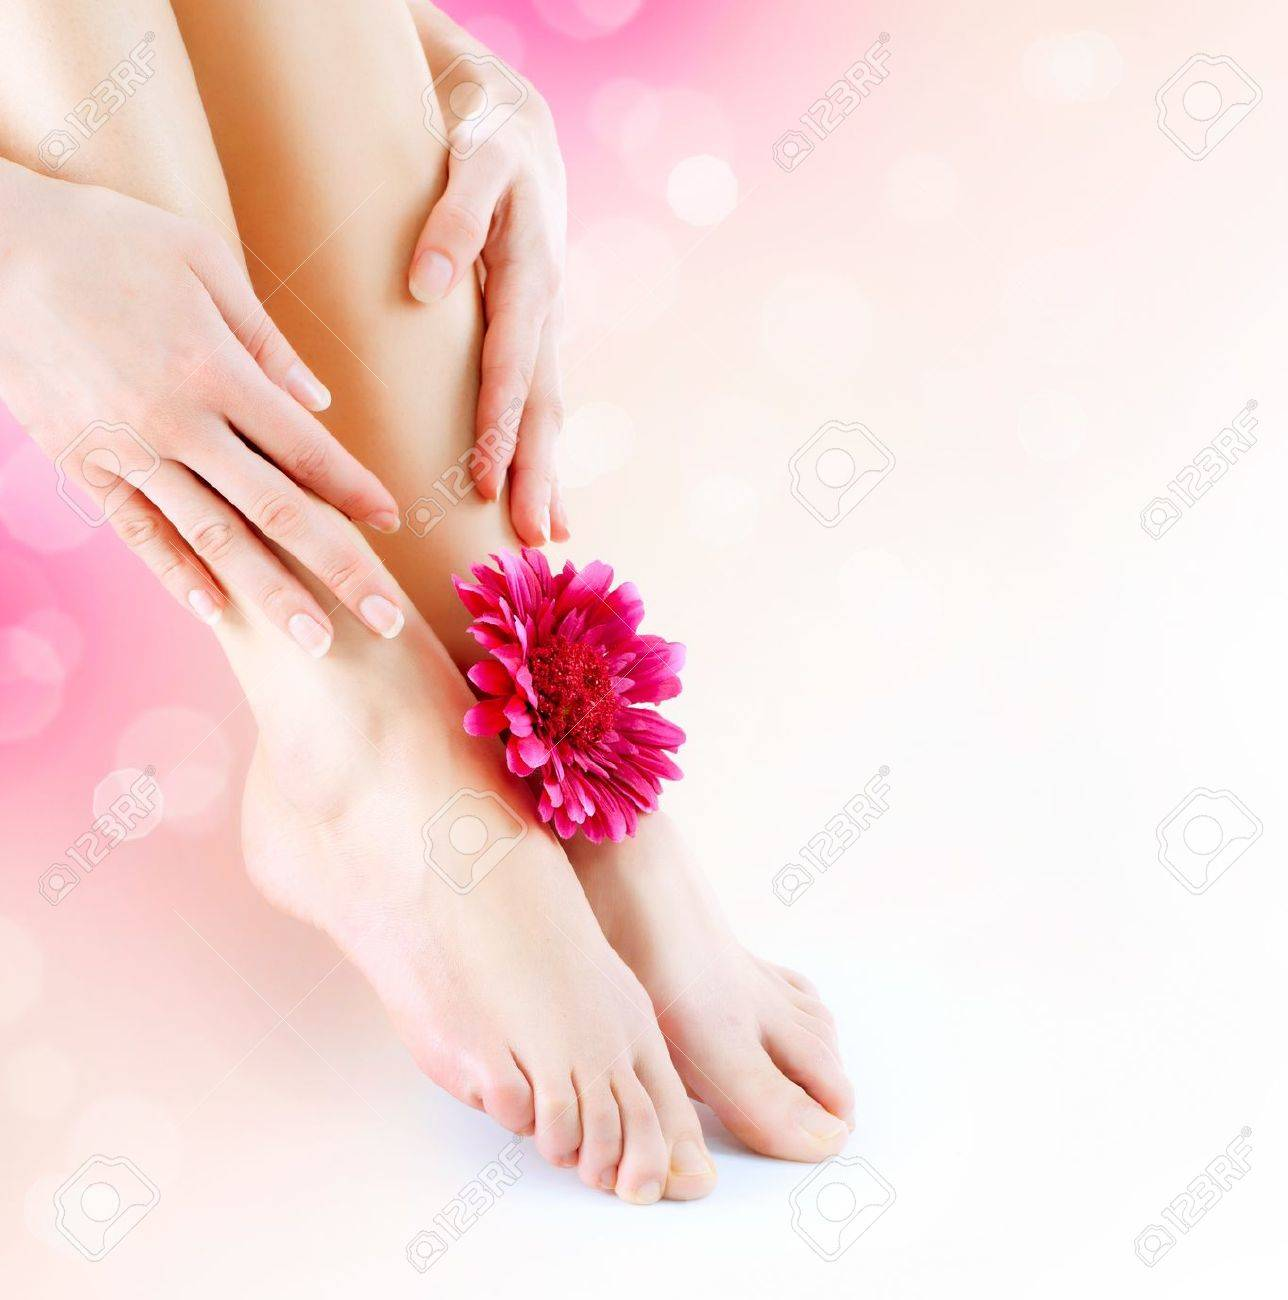 Woman s Feet and Hands  Manicure and Pedicure concept Stock Photo - 18696816